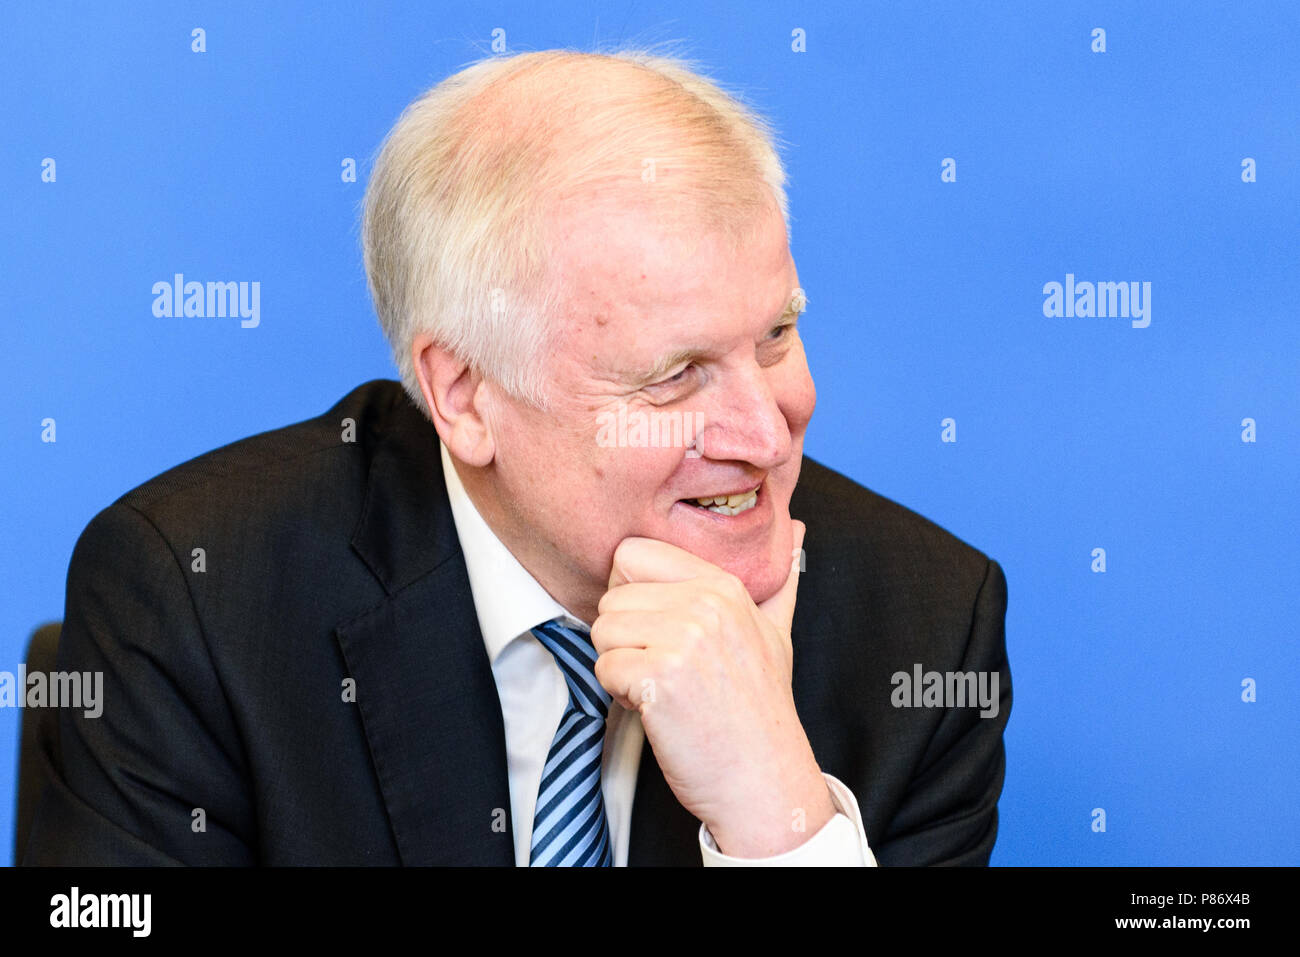 Berlin, Germany. 10th July, 2018. German Federal Minister of Interior, Construction and Homeland, Horst Seehofer of the Christian Social Union (CSU) during the presentation of the ''Masterplan Migration - Measures to Organize, Control and Limit Immigration.'' The plan includes stopping and rejecting migrants who are already registered in other EU countries at the German border. Credit: Markus Heine/SOPA Images/ZUMA Wire/Alamy Live News - Stock Image